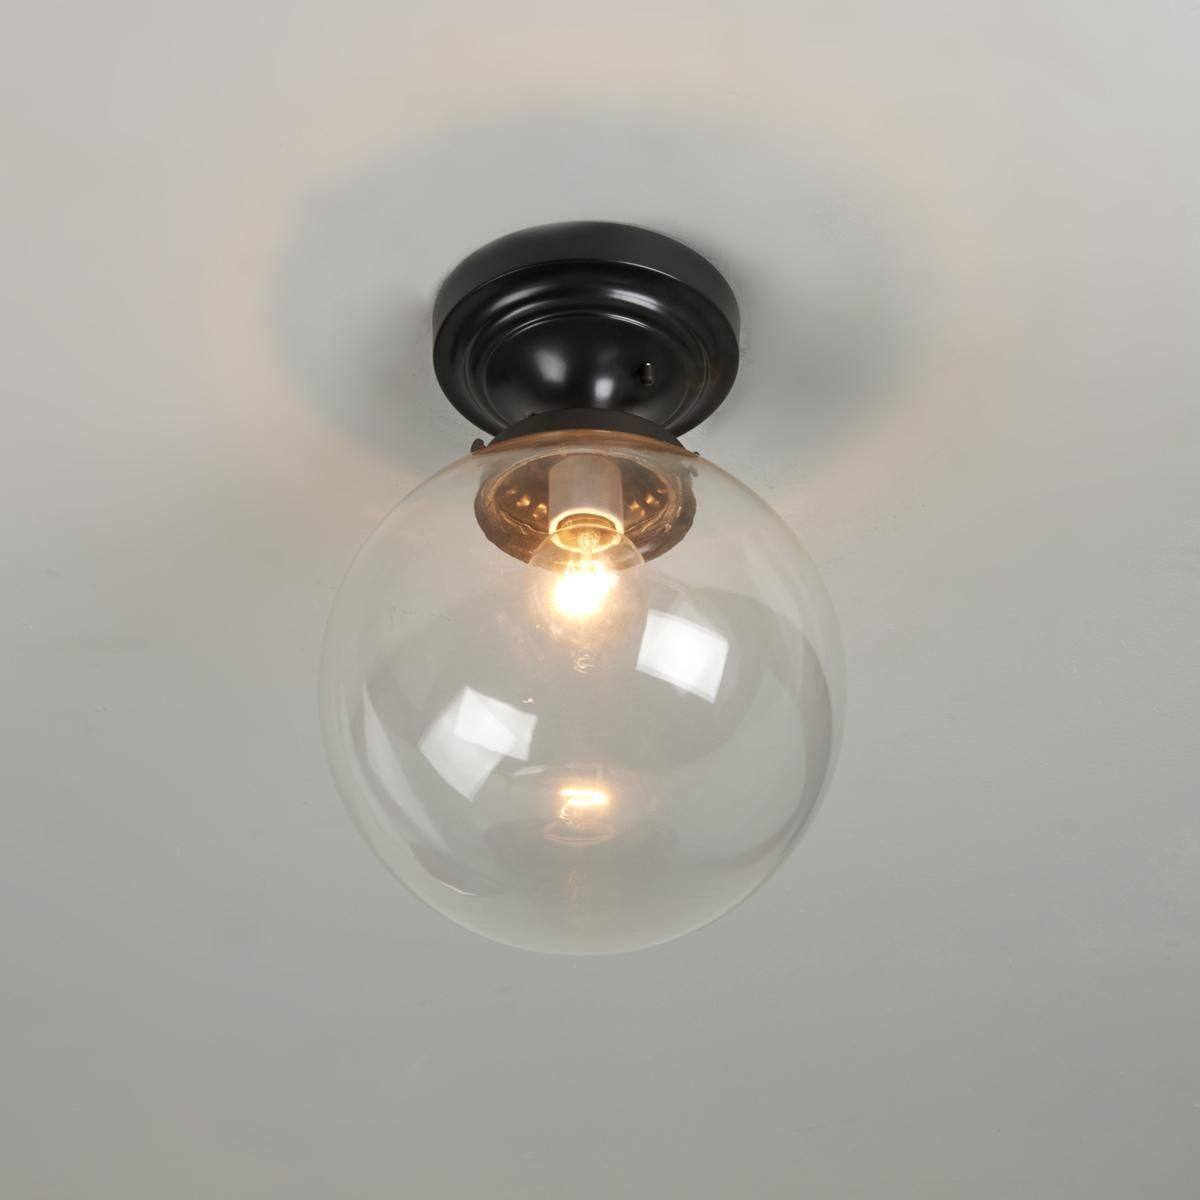 Glass Globe Ceiling Light Clear or White Glass Globe ceiling